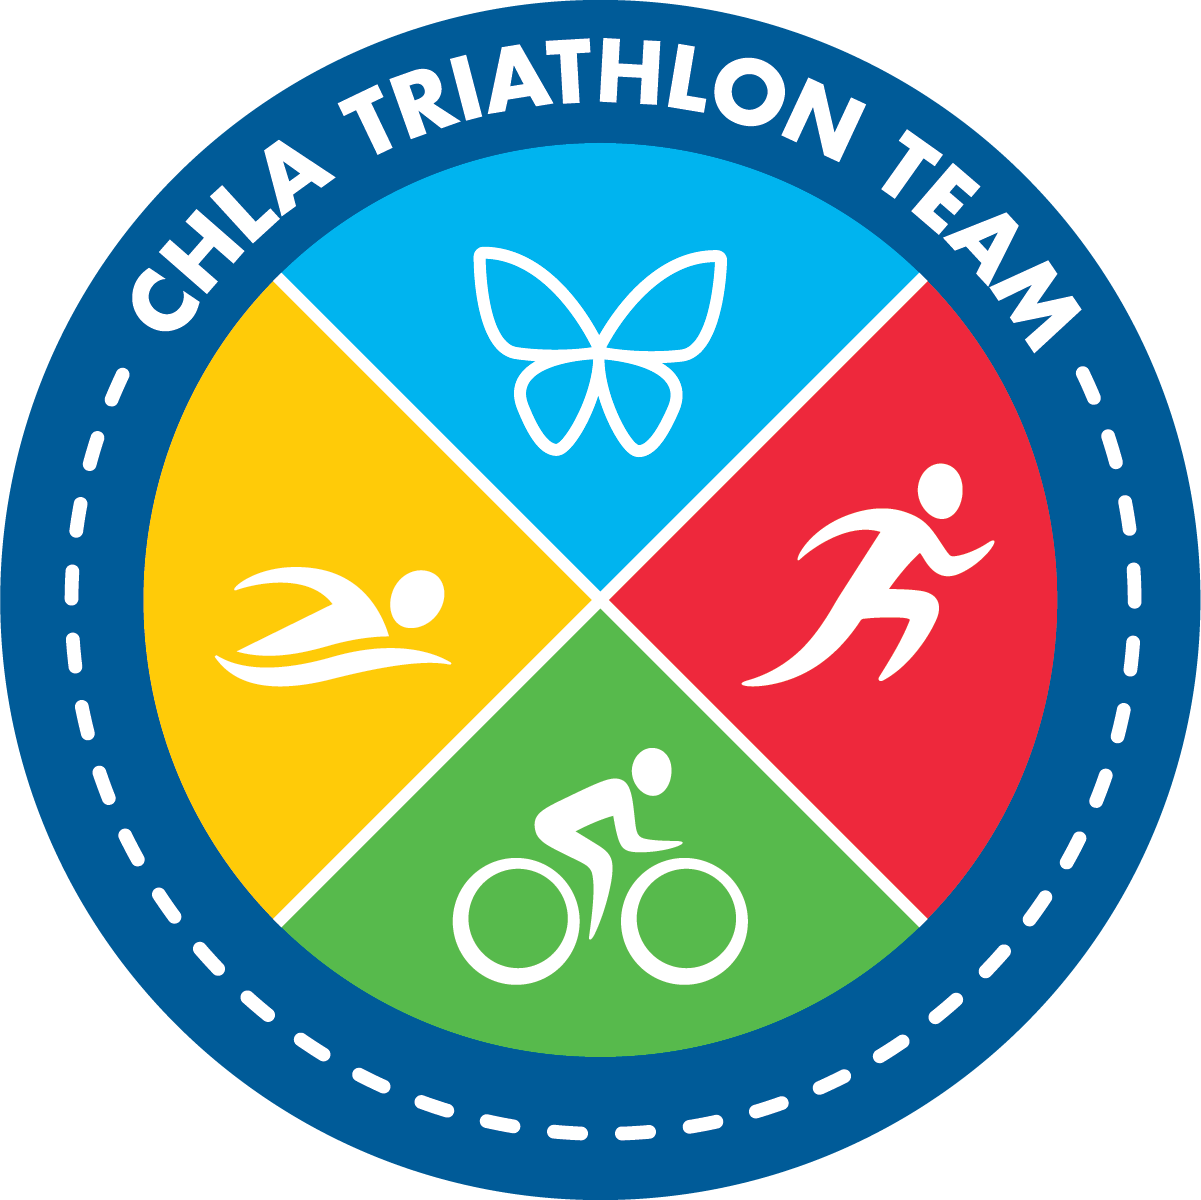 CHLA - Triathlon Team - Badge.png